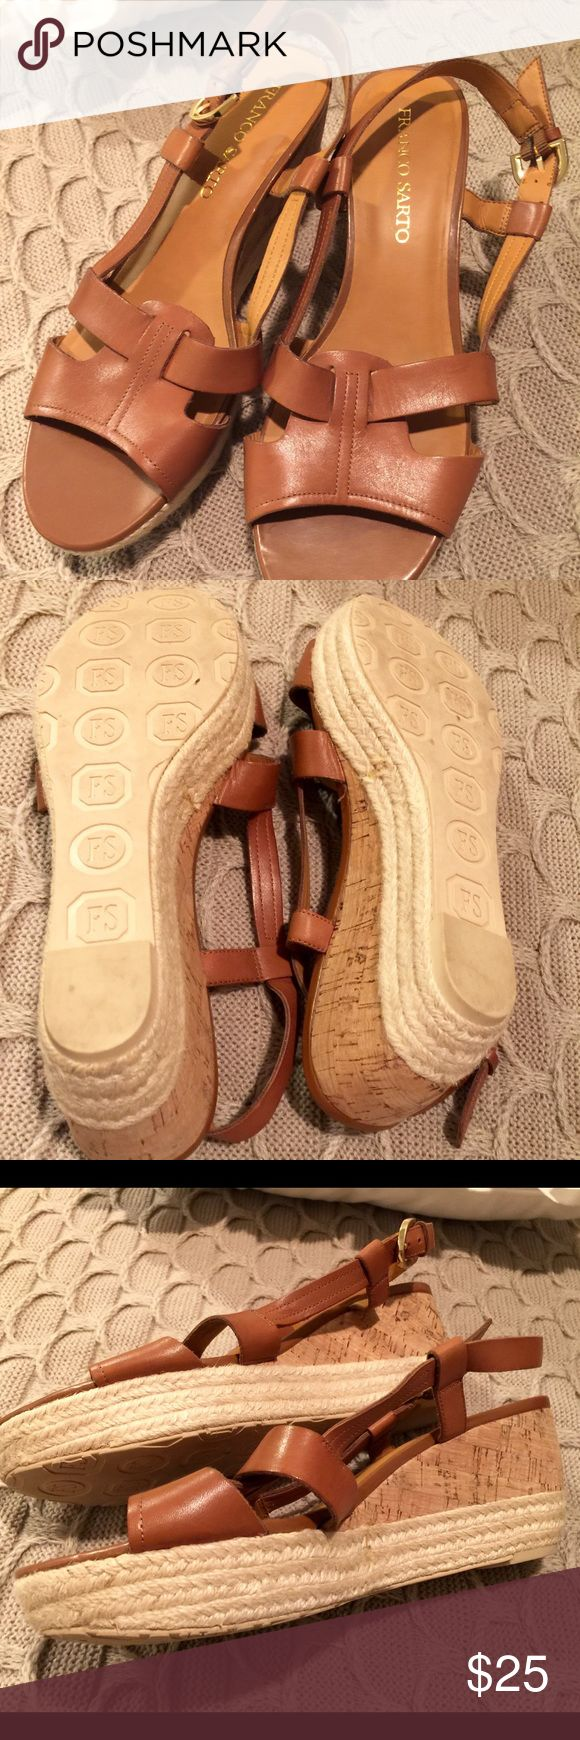 FRANCO SARTO chestnut/ beige espadrilles wedges Franco Sarto chestnut/ beige espadrille wedges. Gently worn , super comfortable. Size 10. Pet and smoke free environment. Franco Sarto Shoes Wedges